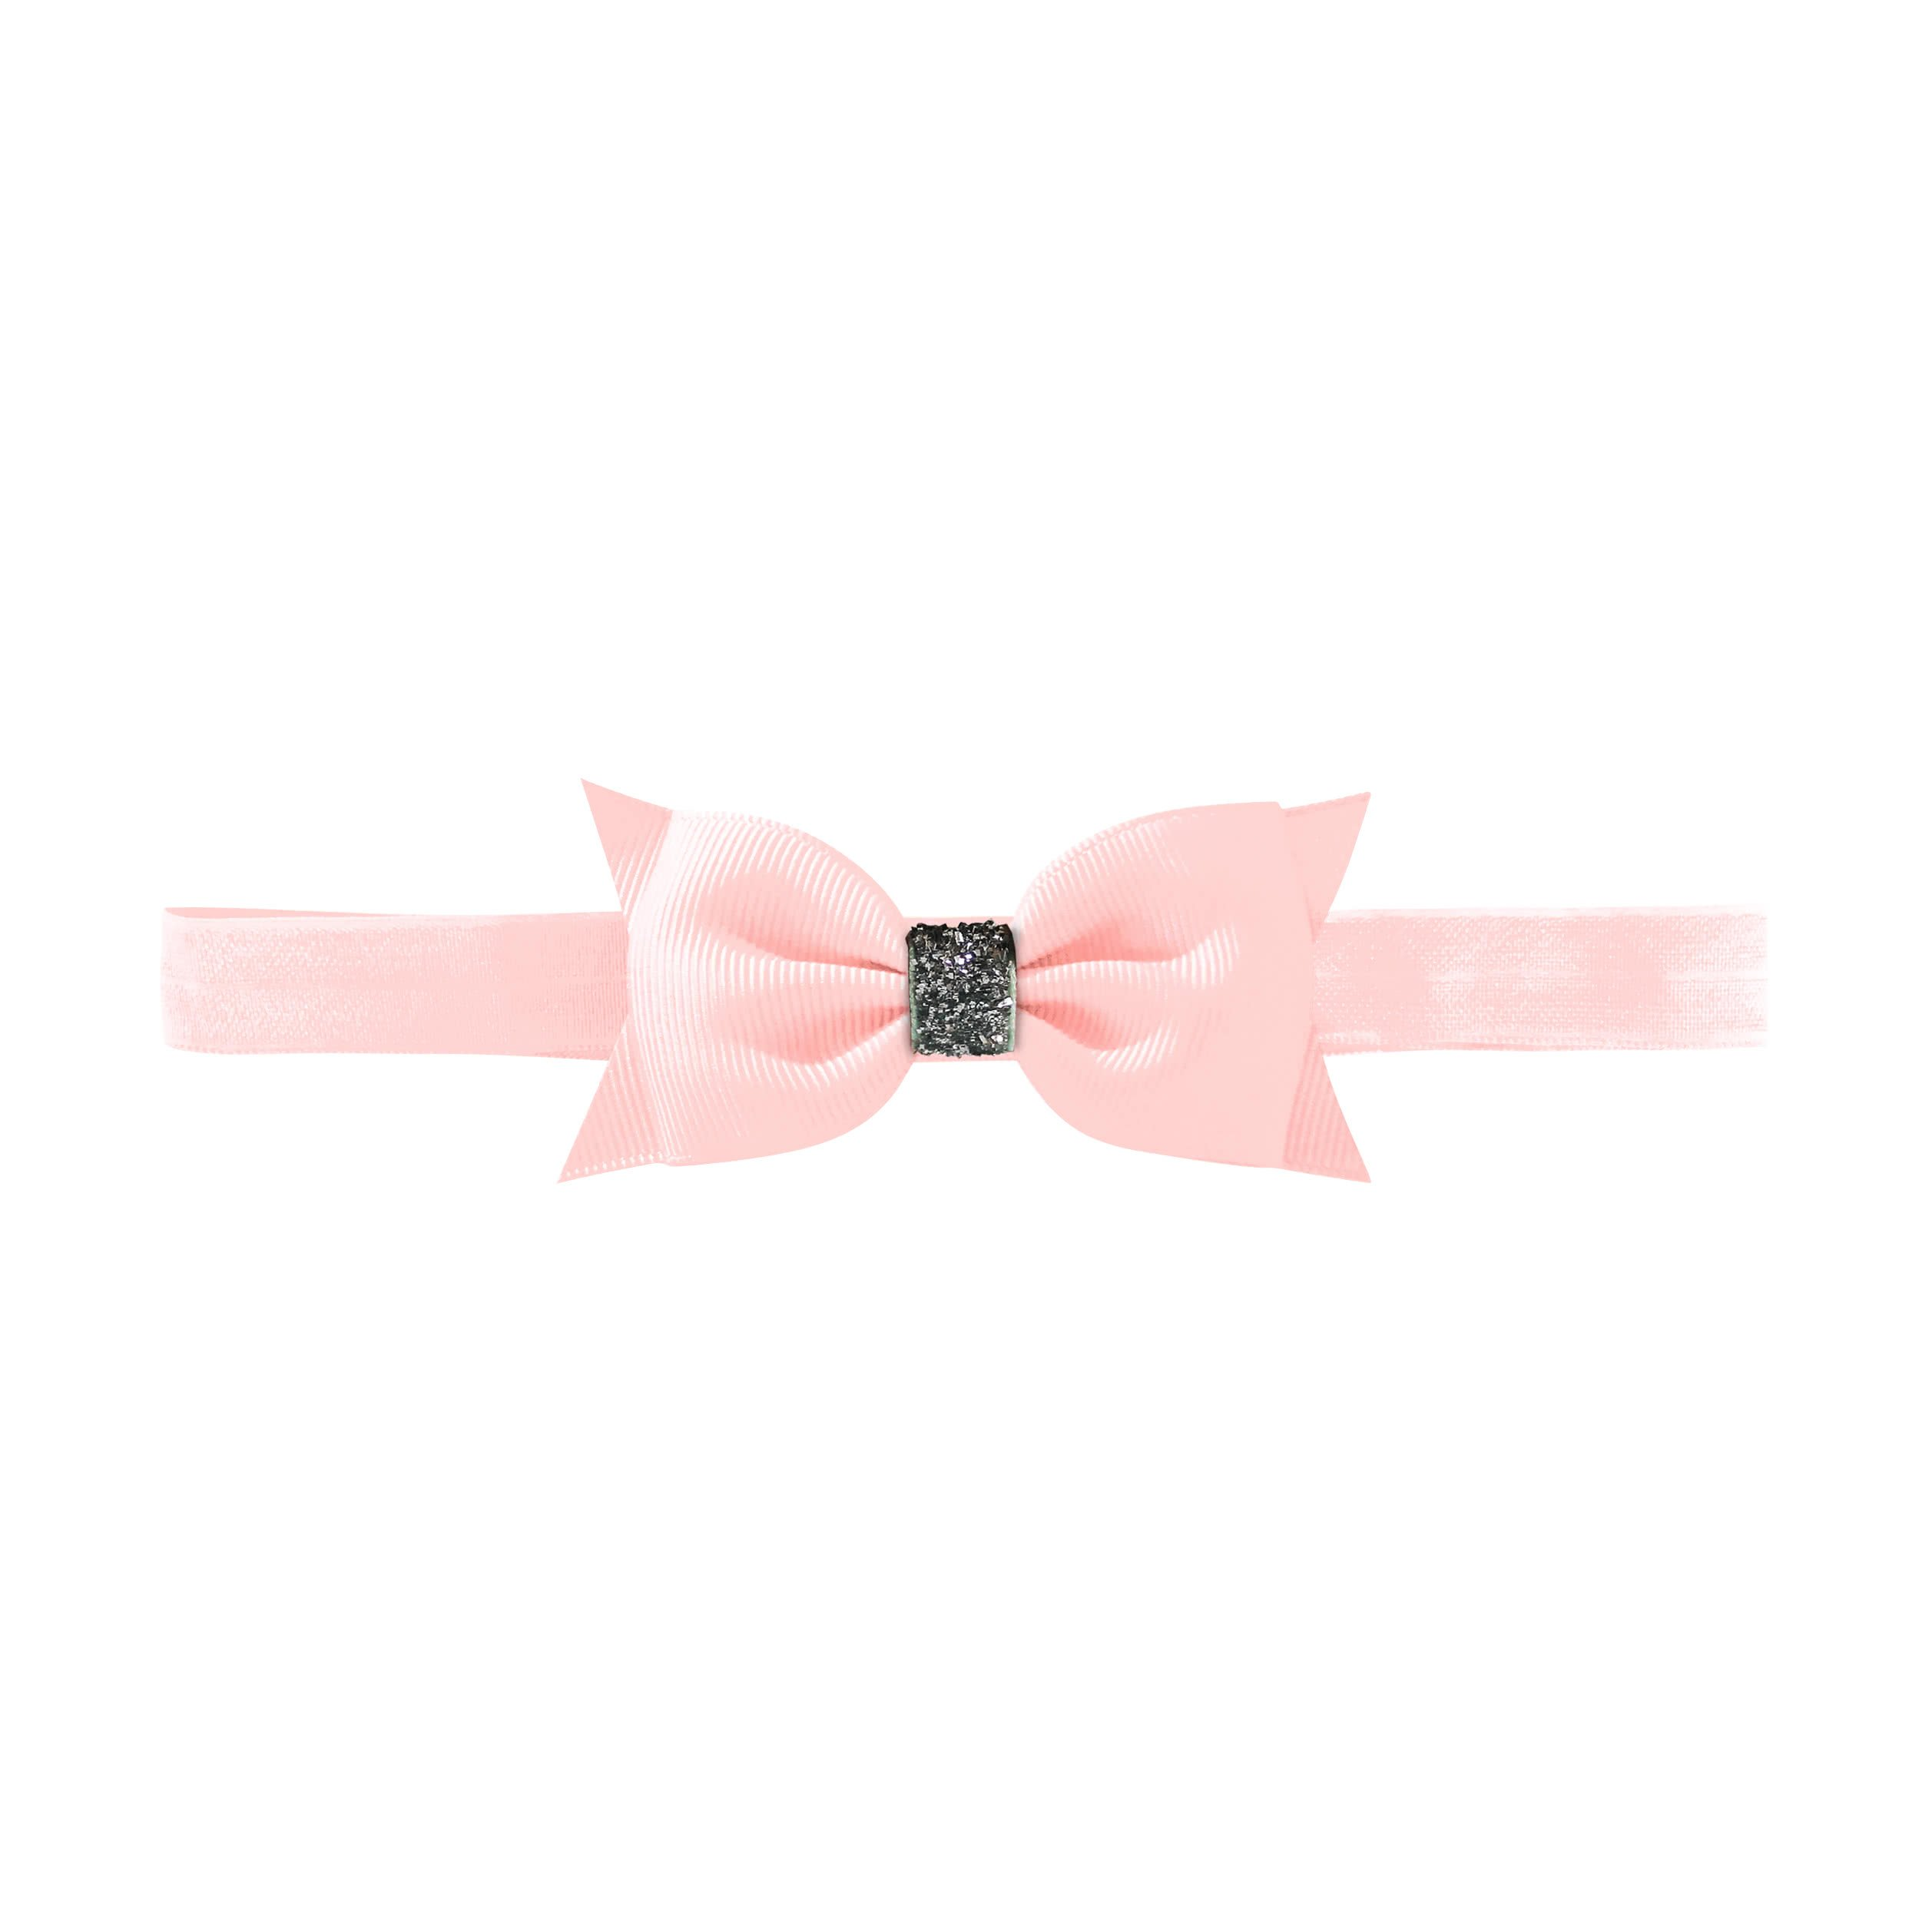 Image of   Double Bowtie bow - elastic hairband - powder pink glitter